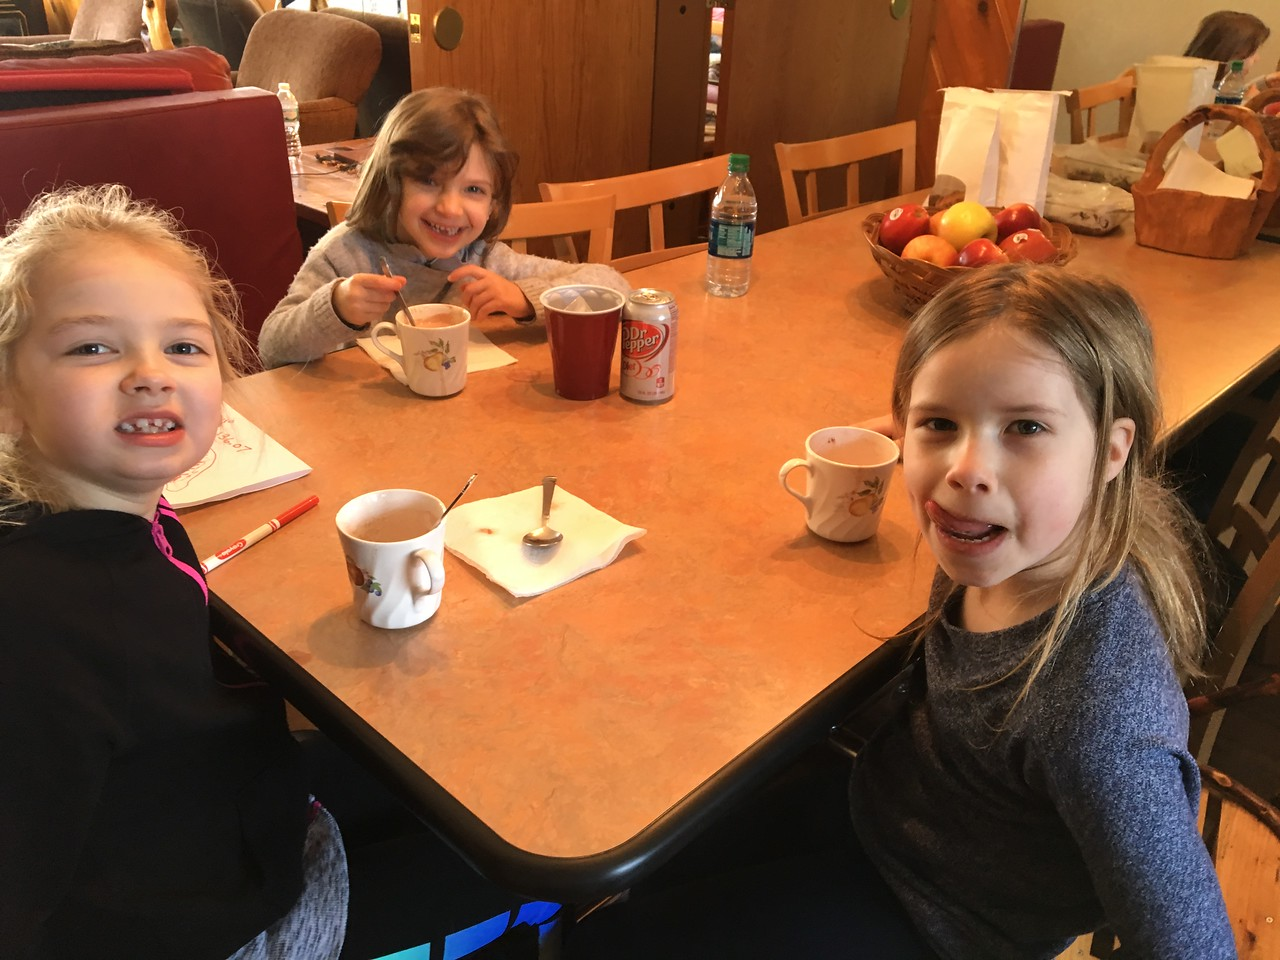 OUR 3 YOUNG LADIES MIA, ELLIE AND PEYTON ENJOYING THEIR HOT CHOCOLATE